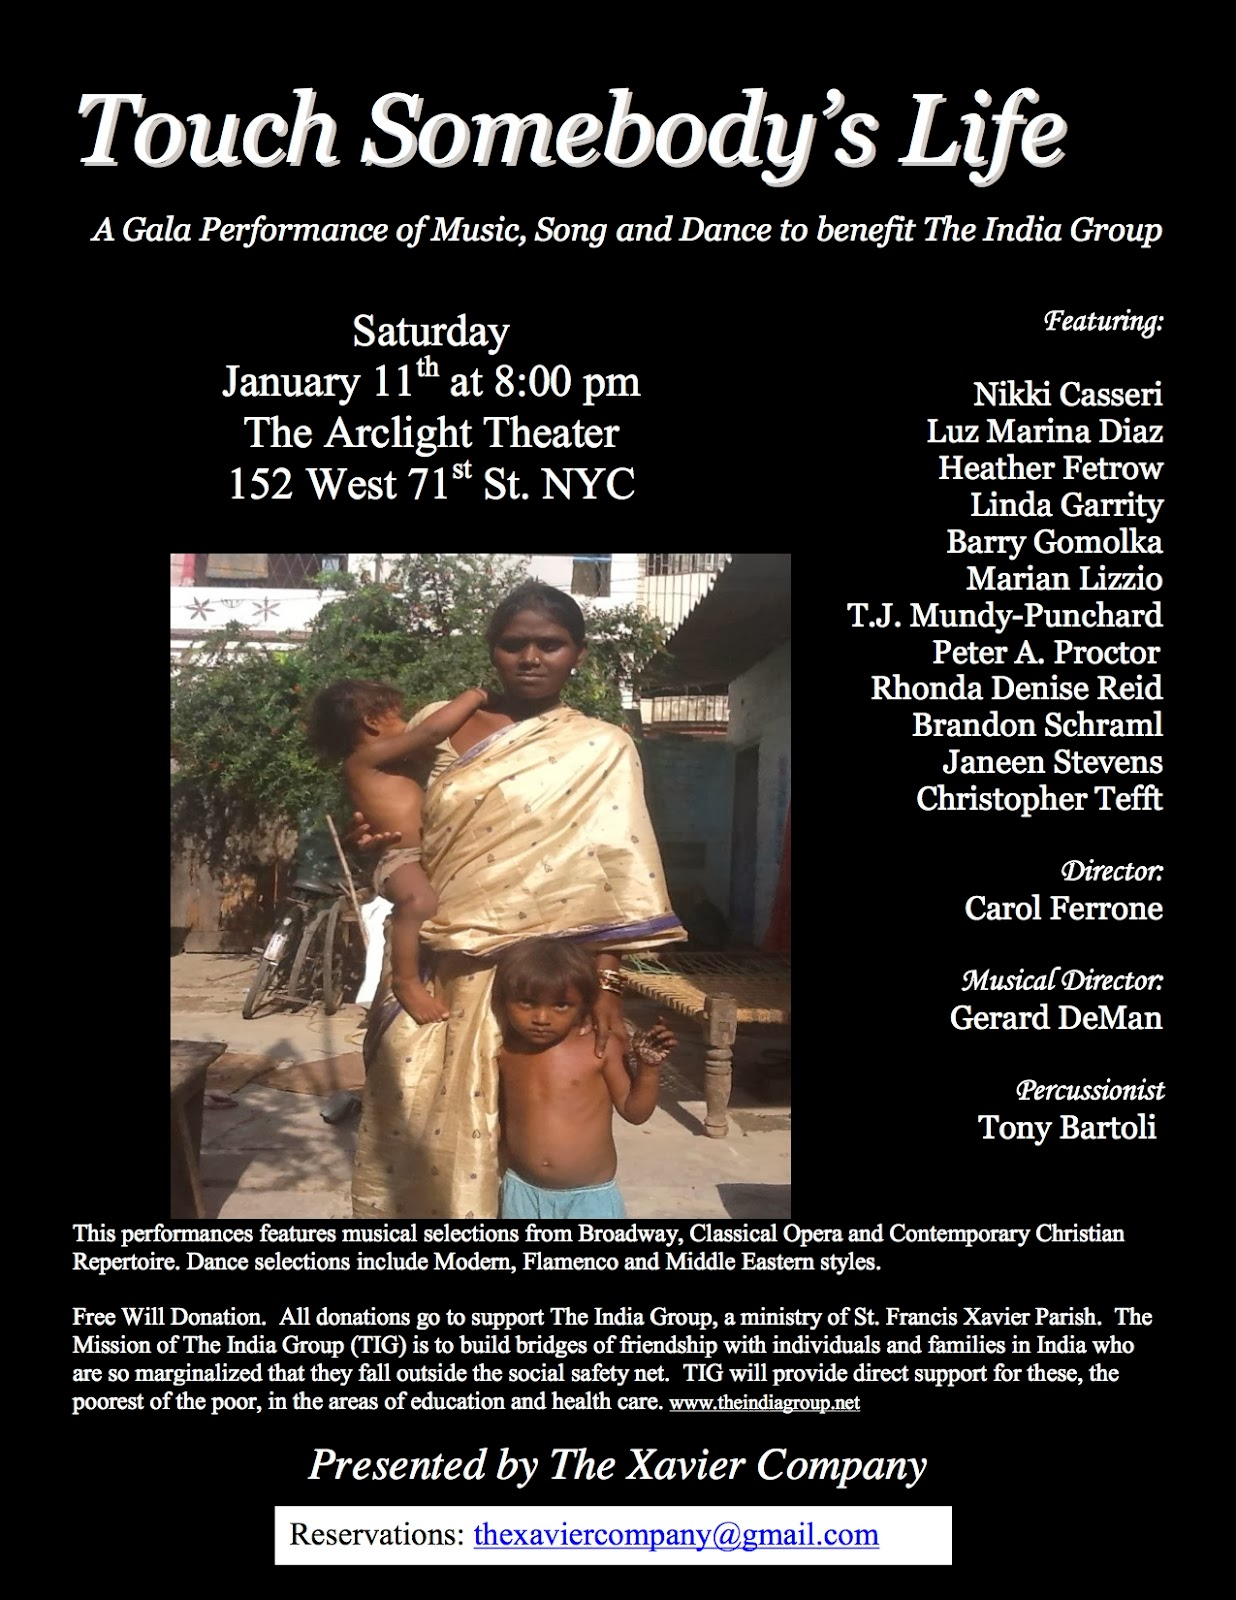 The India Group: Touch Somebody's Life! Gala Performance of